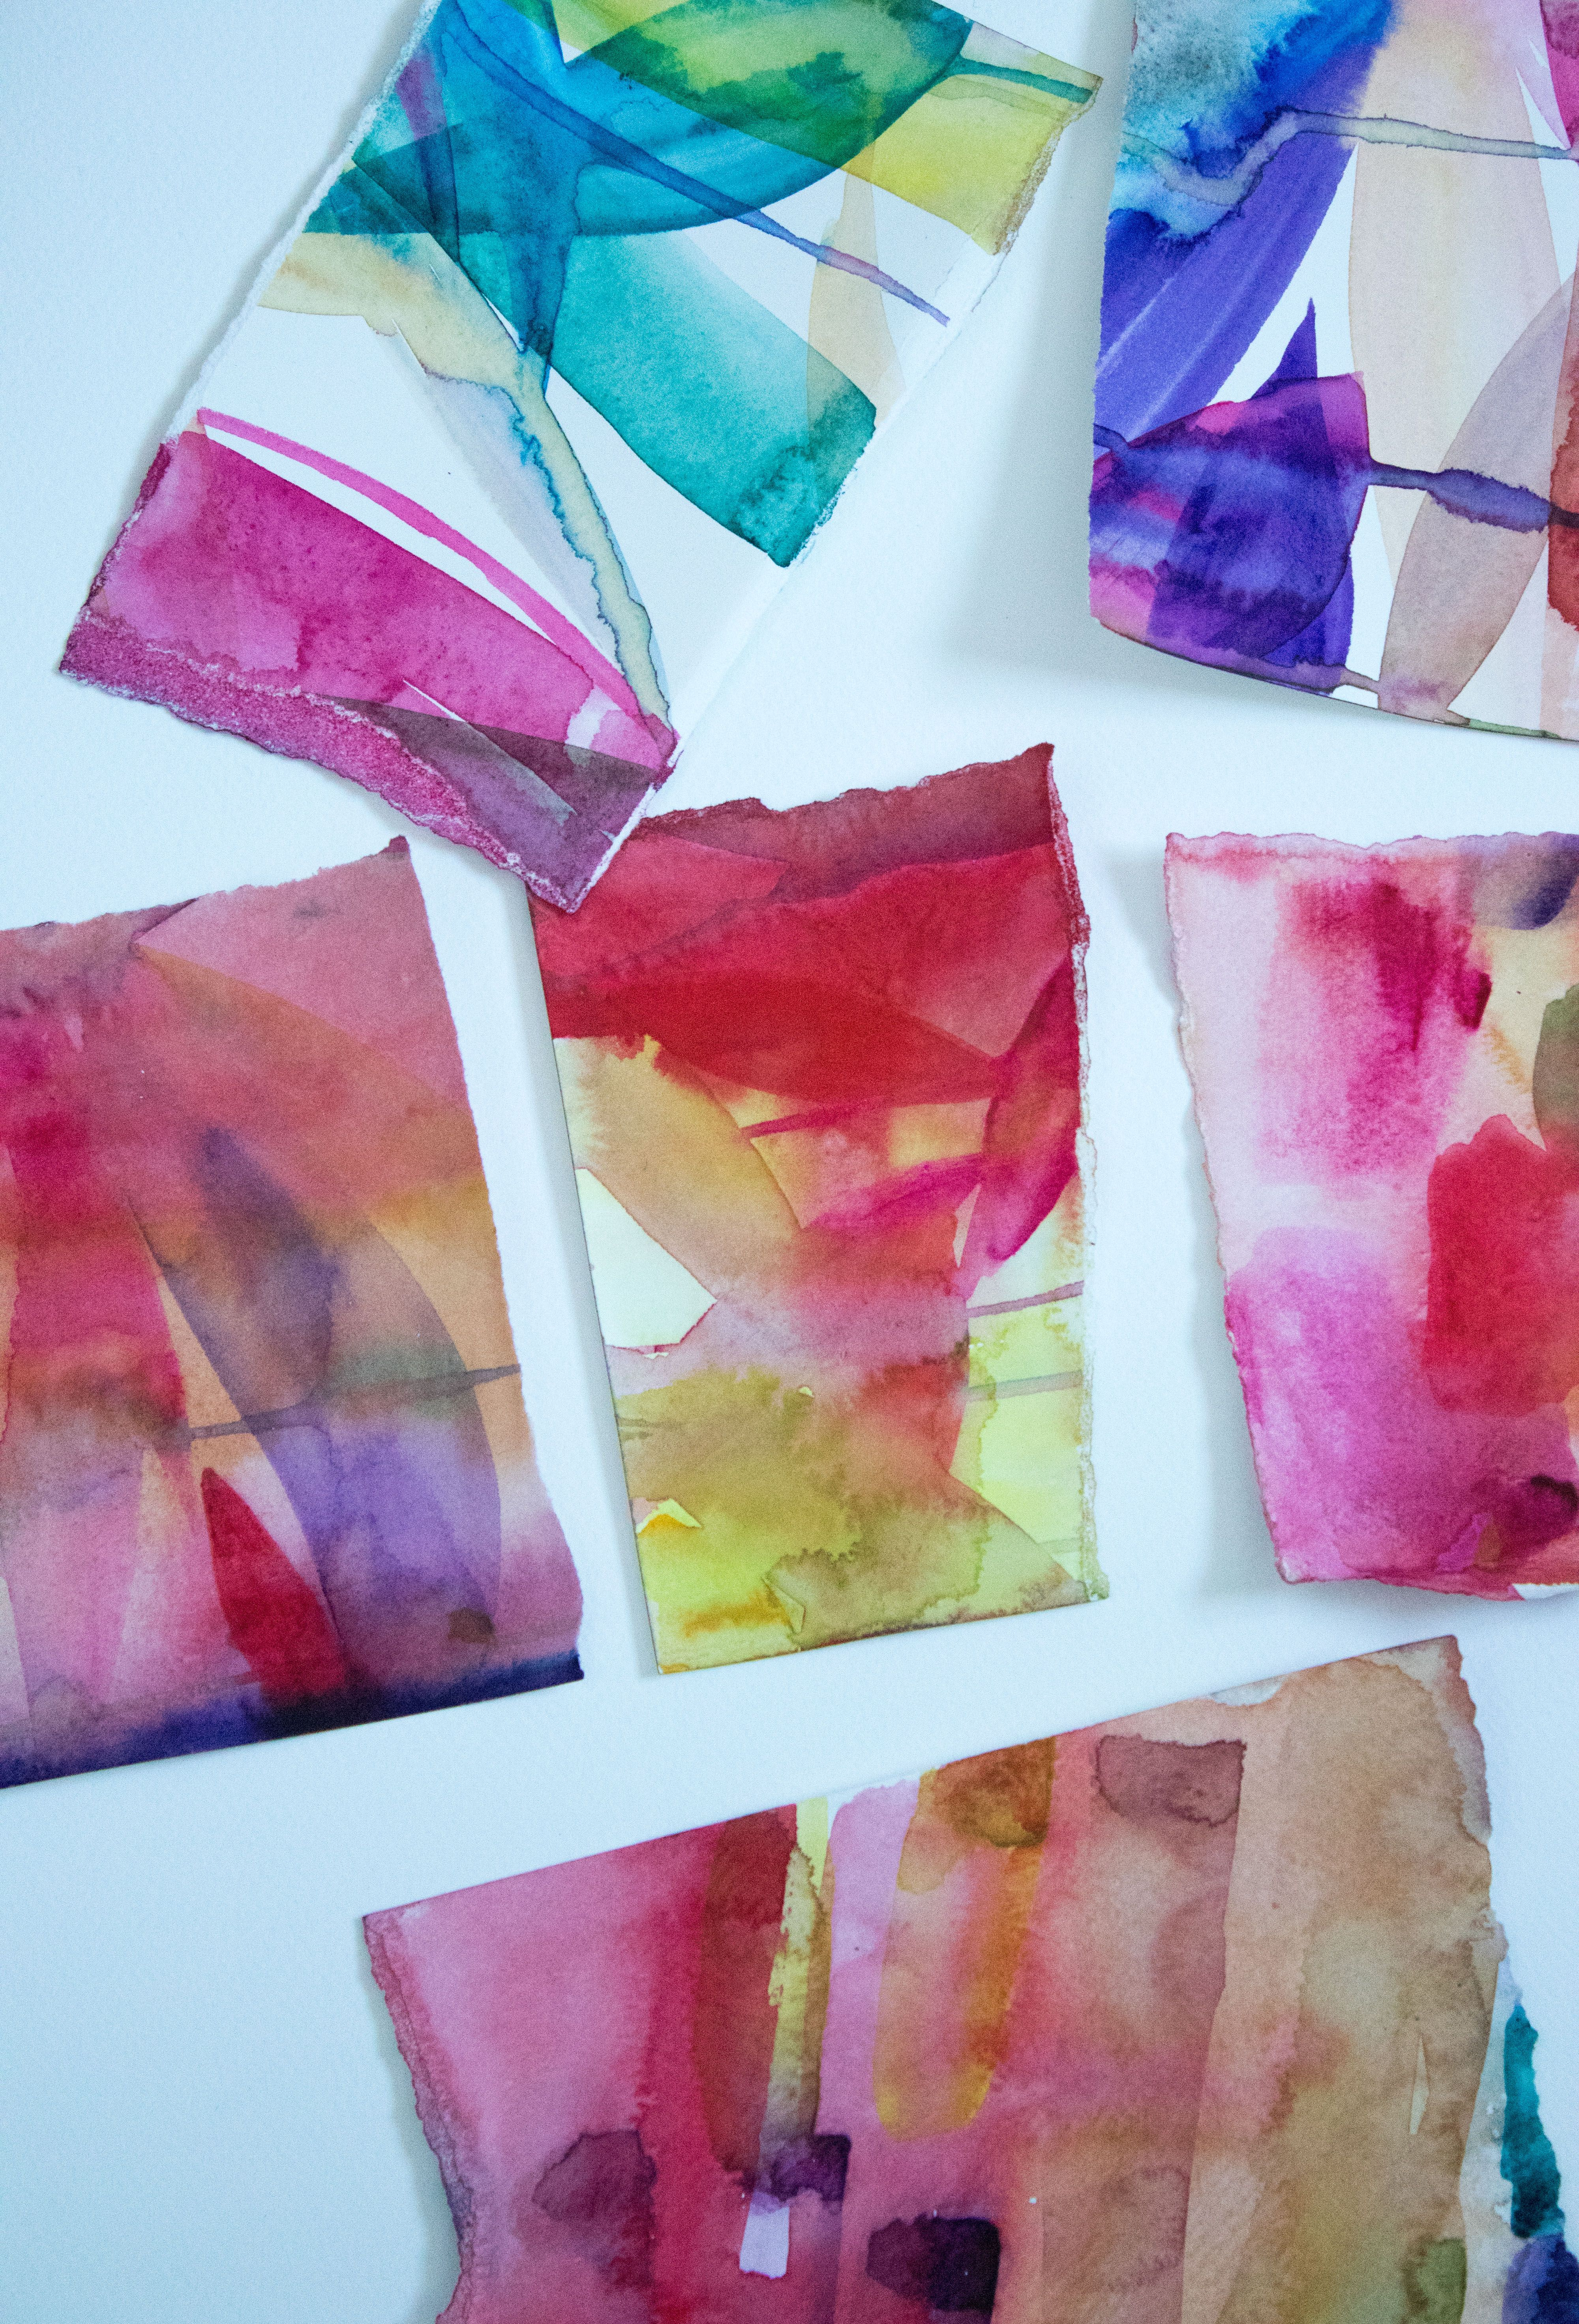 Experiments With Colour From Artist Helen Wells In 2019 Abstract